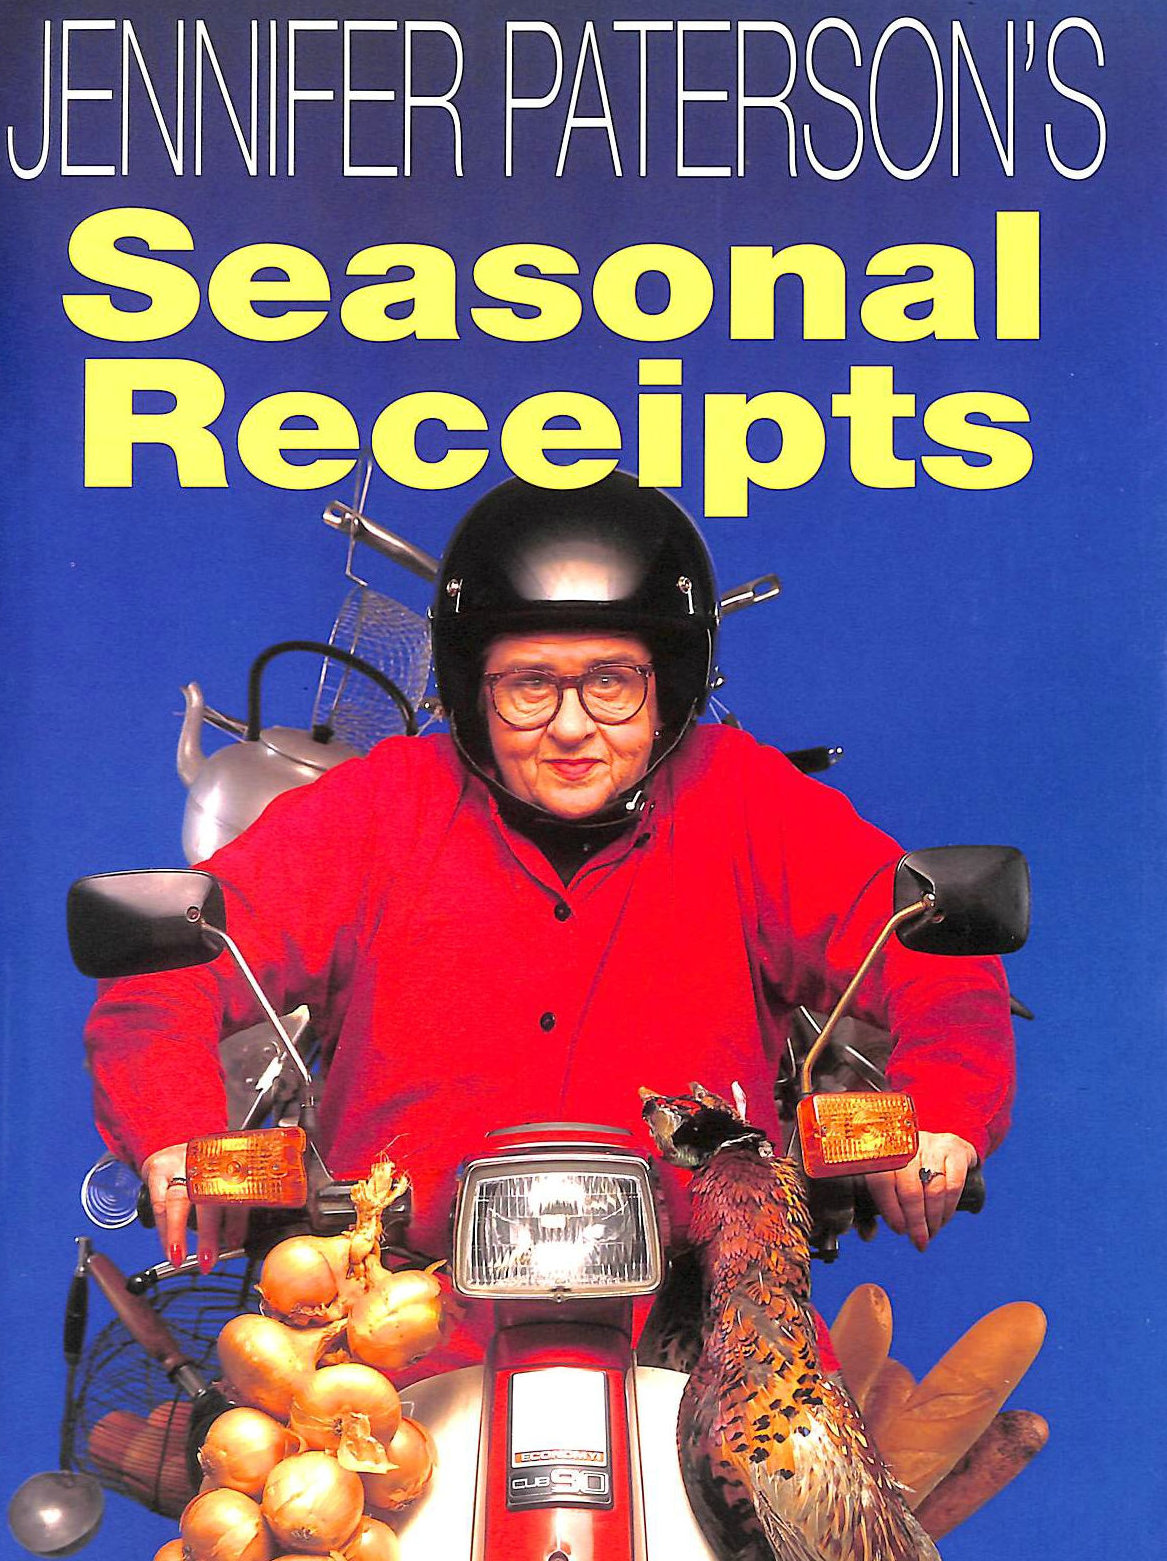 Image for Jennifer Paterson's Seasonal Receipts